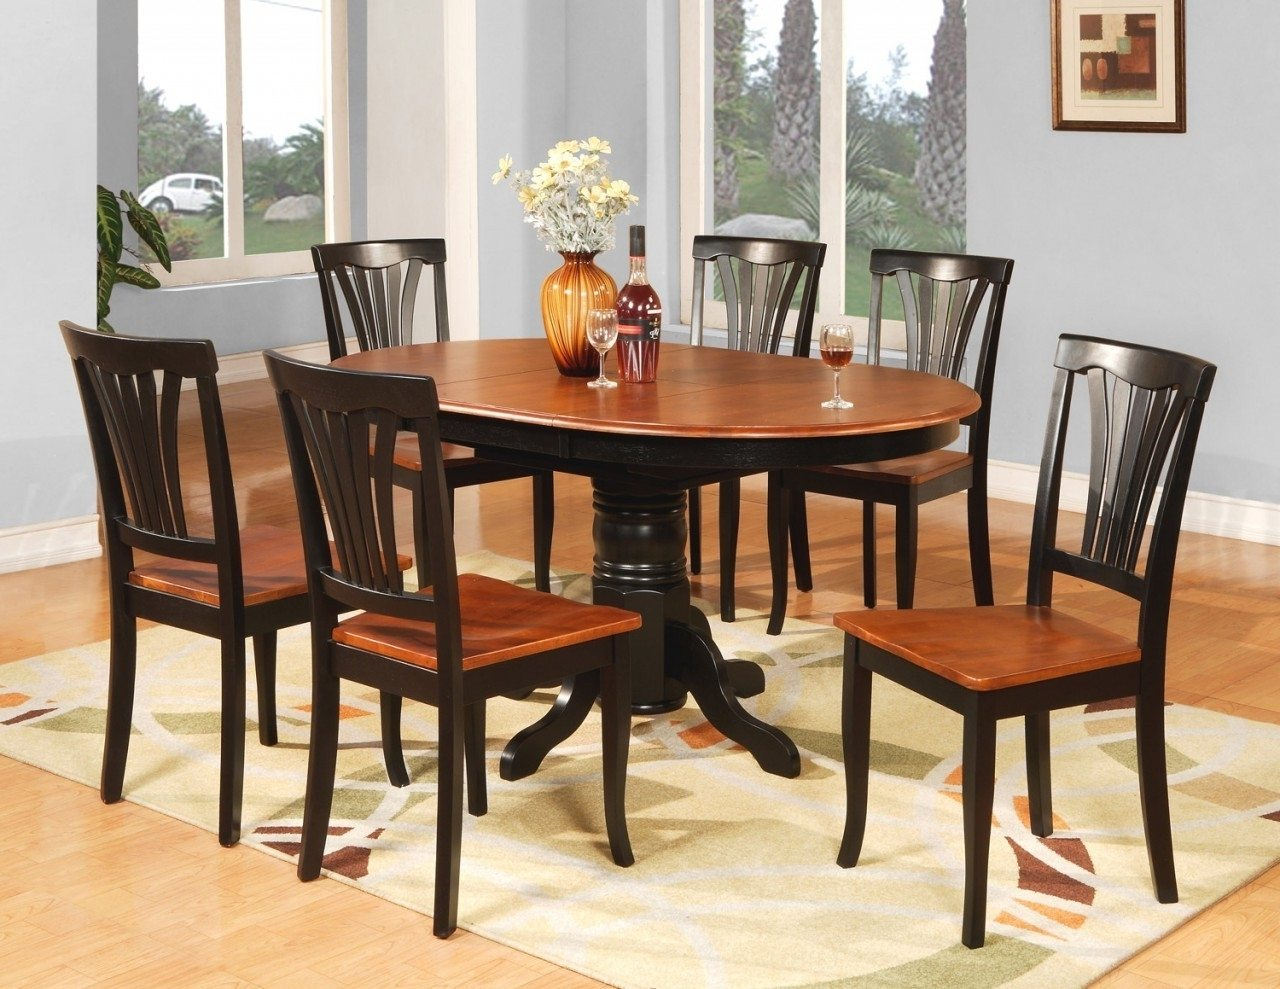 Cheap dining room tables chairs how to bargain for for Cheap dinner tables